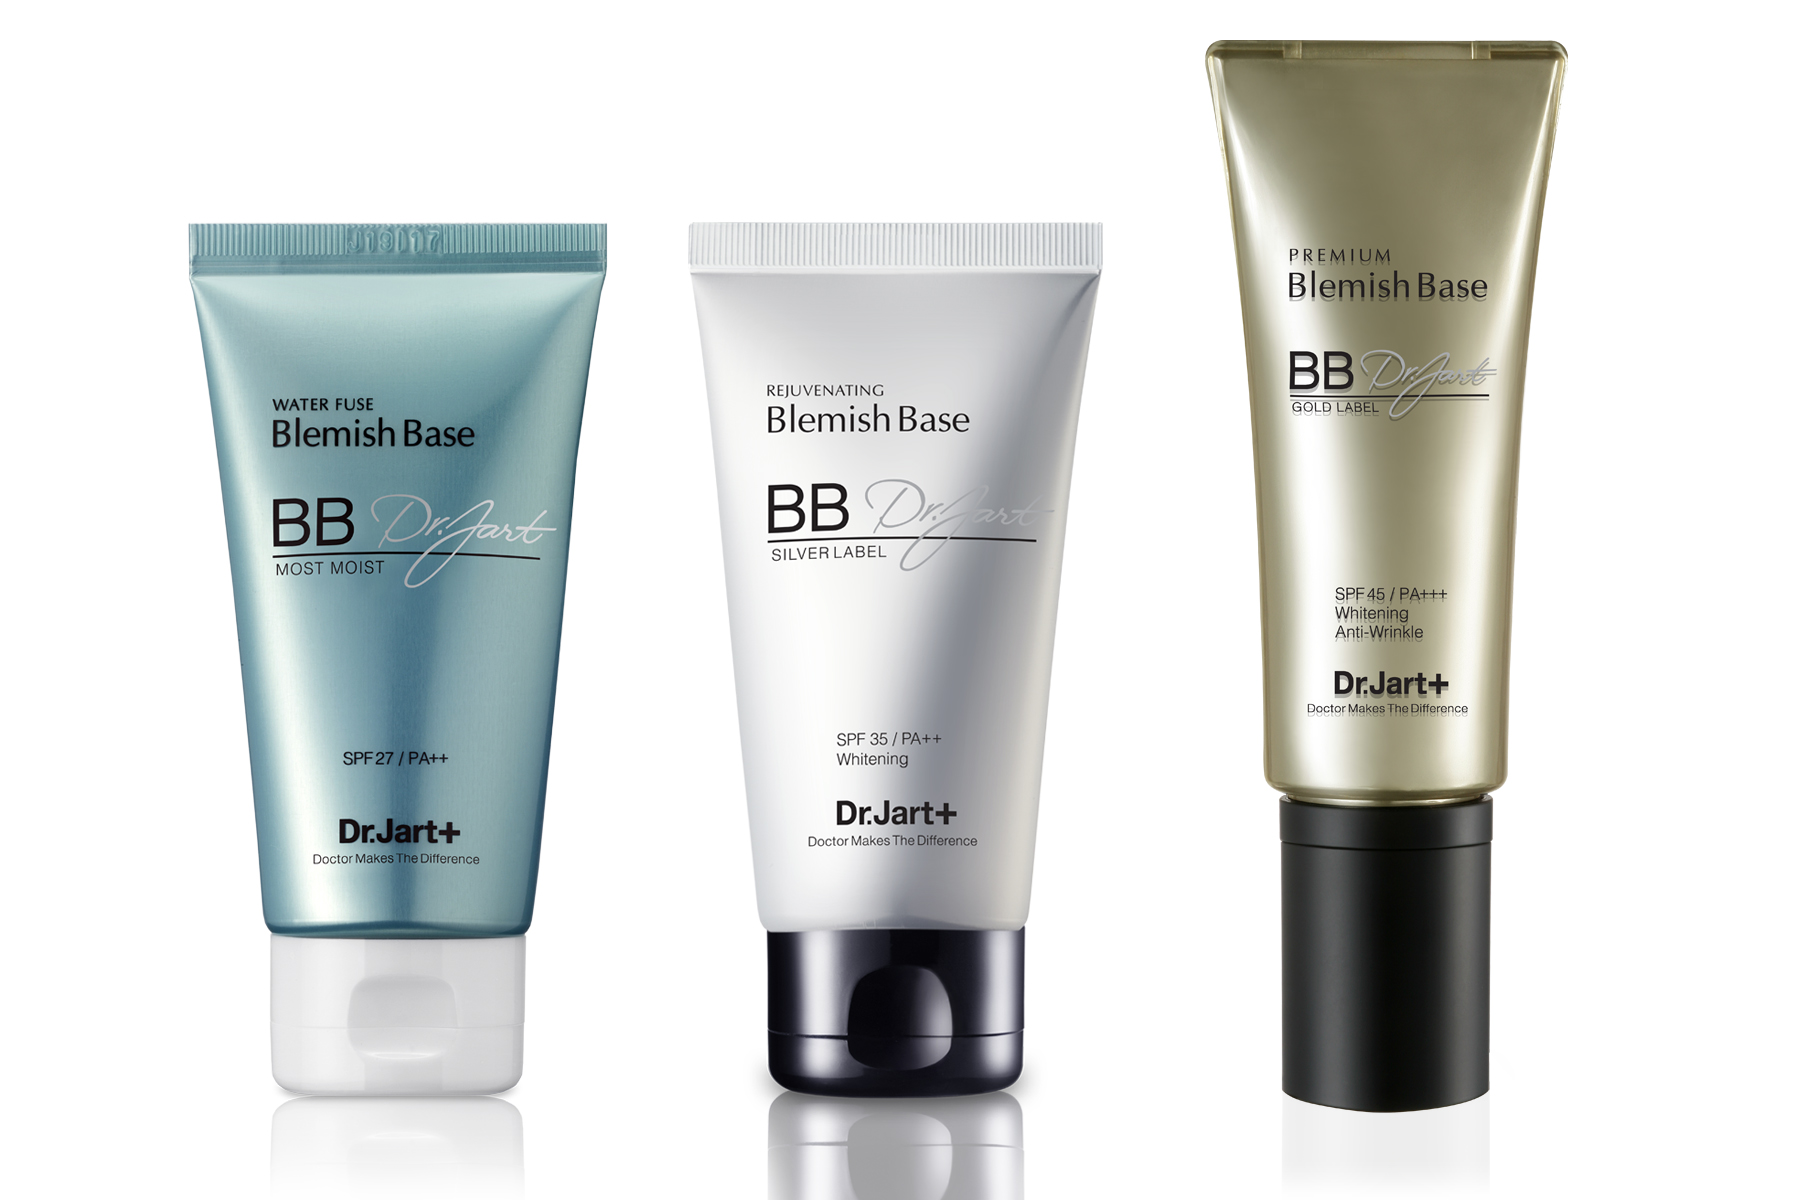 Dr jart bb cream